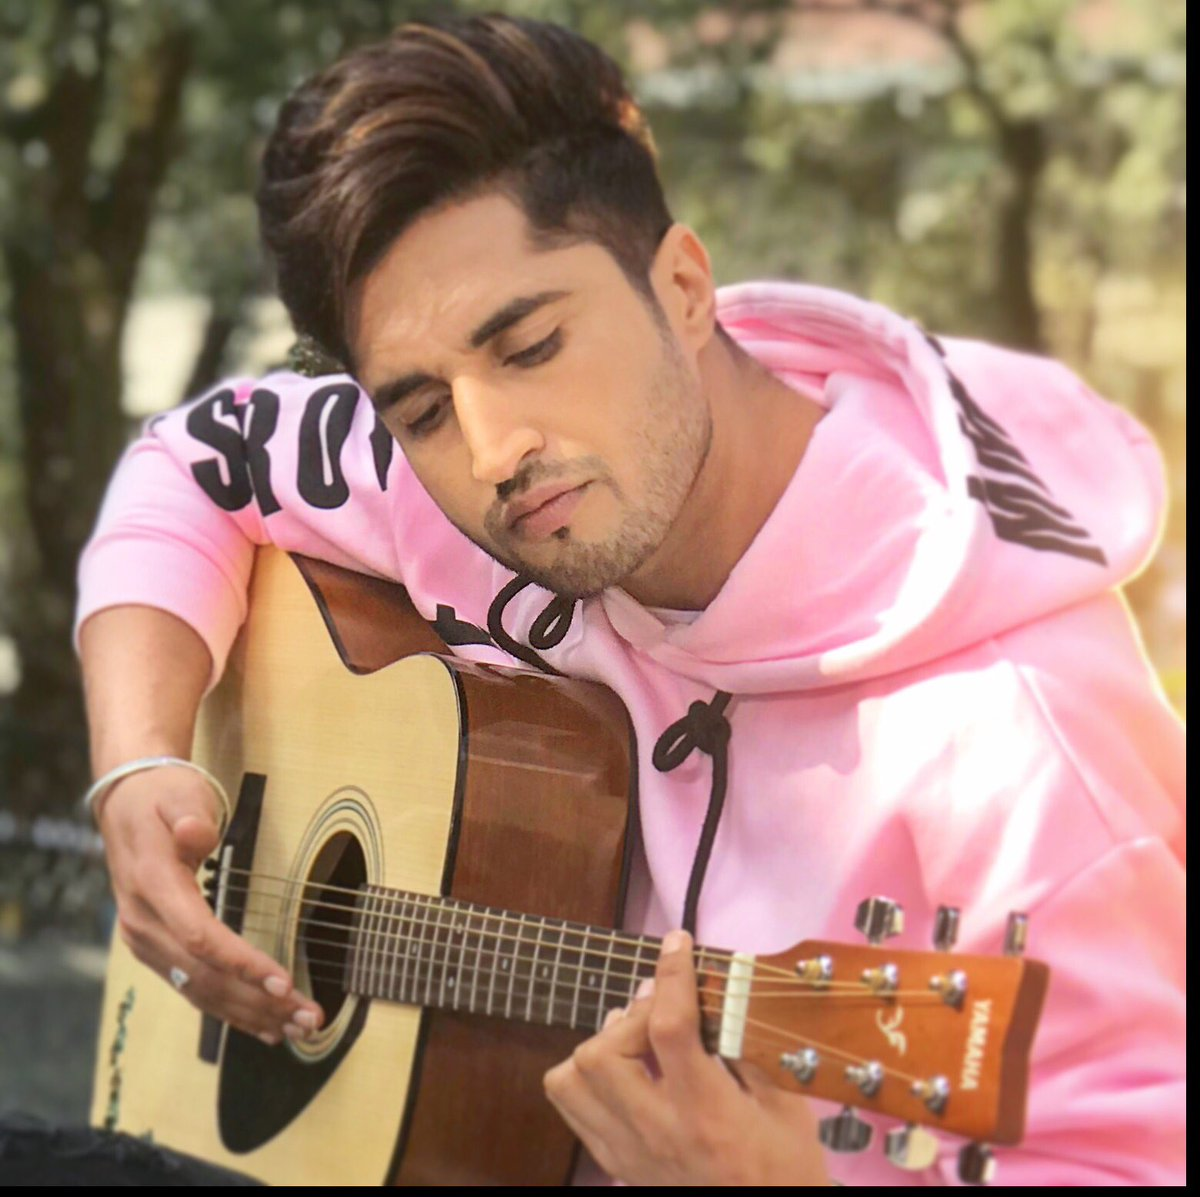 Jassie Gill On Twitter Guitar Sikhda Days To Go